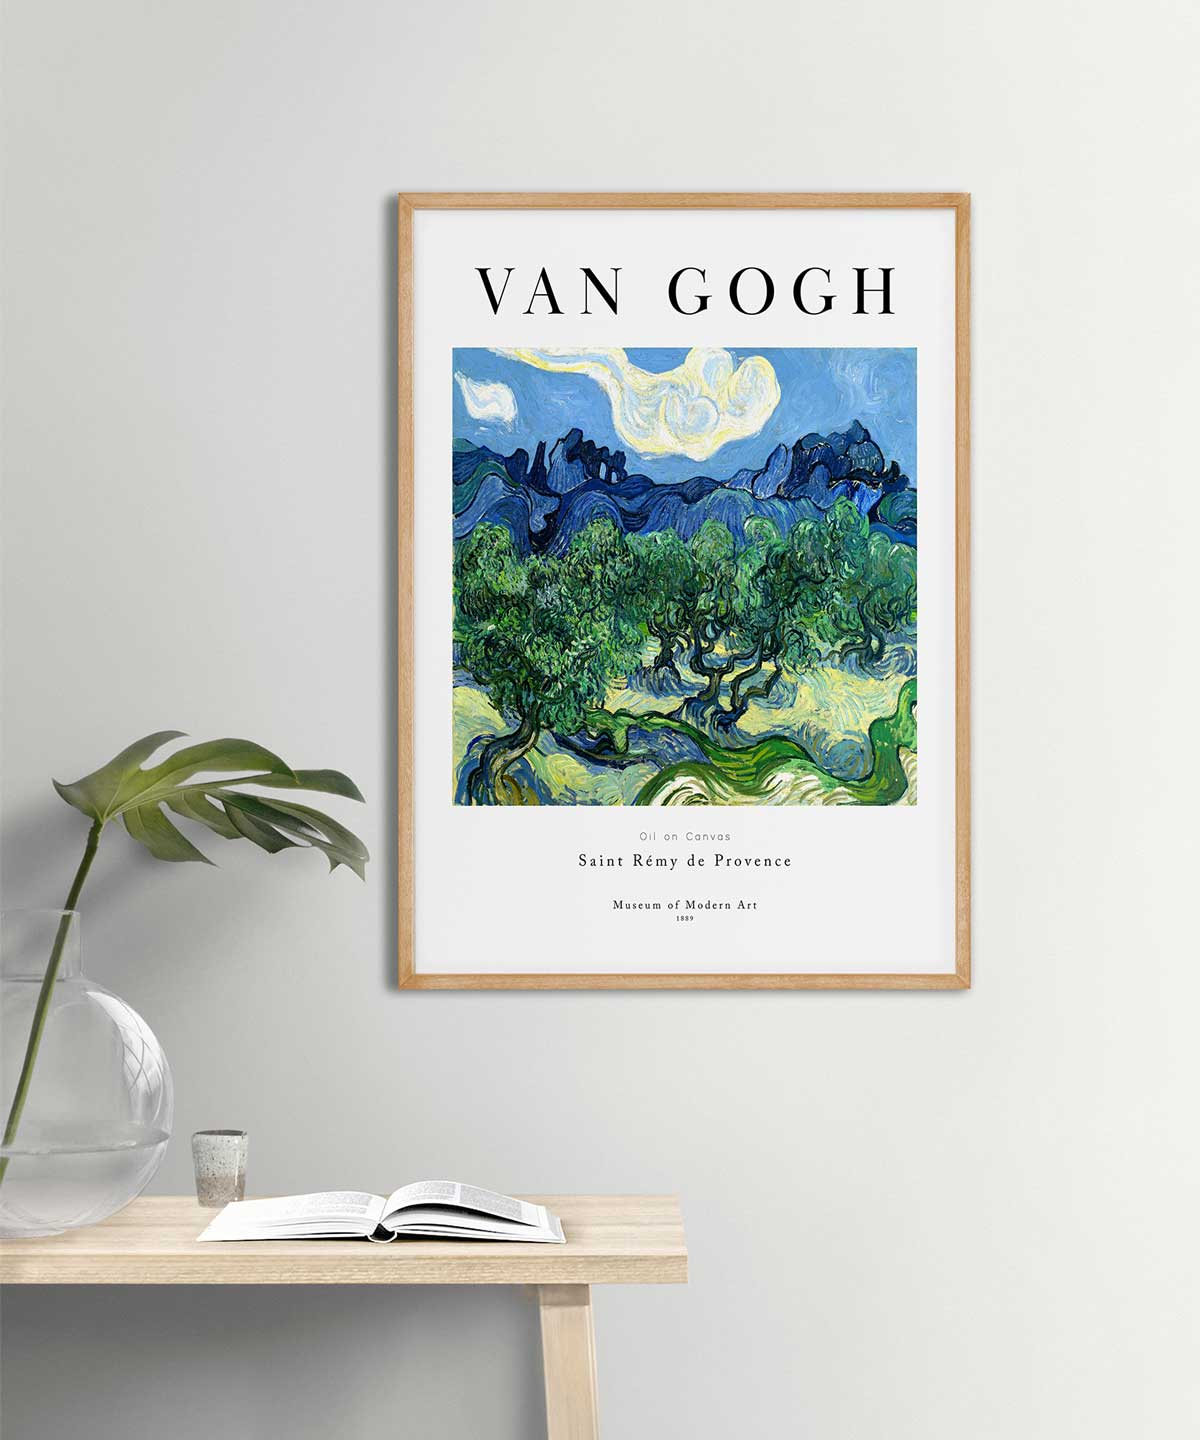 Van-Gogh-Olive-Trees-Poster-on-Wall-Wooden-Frame-Duwart